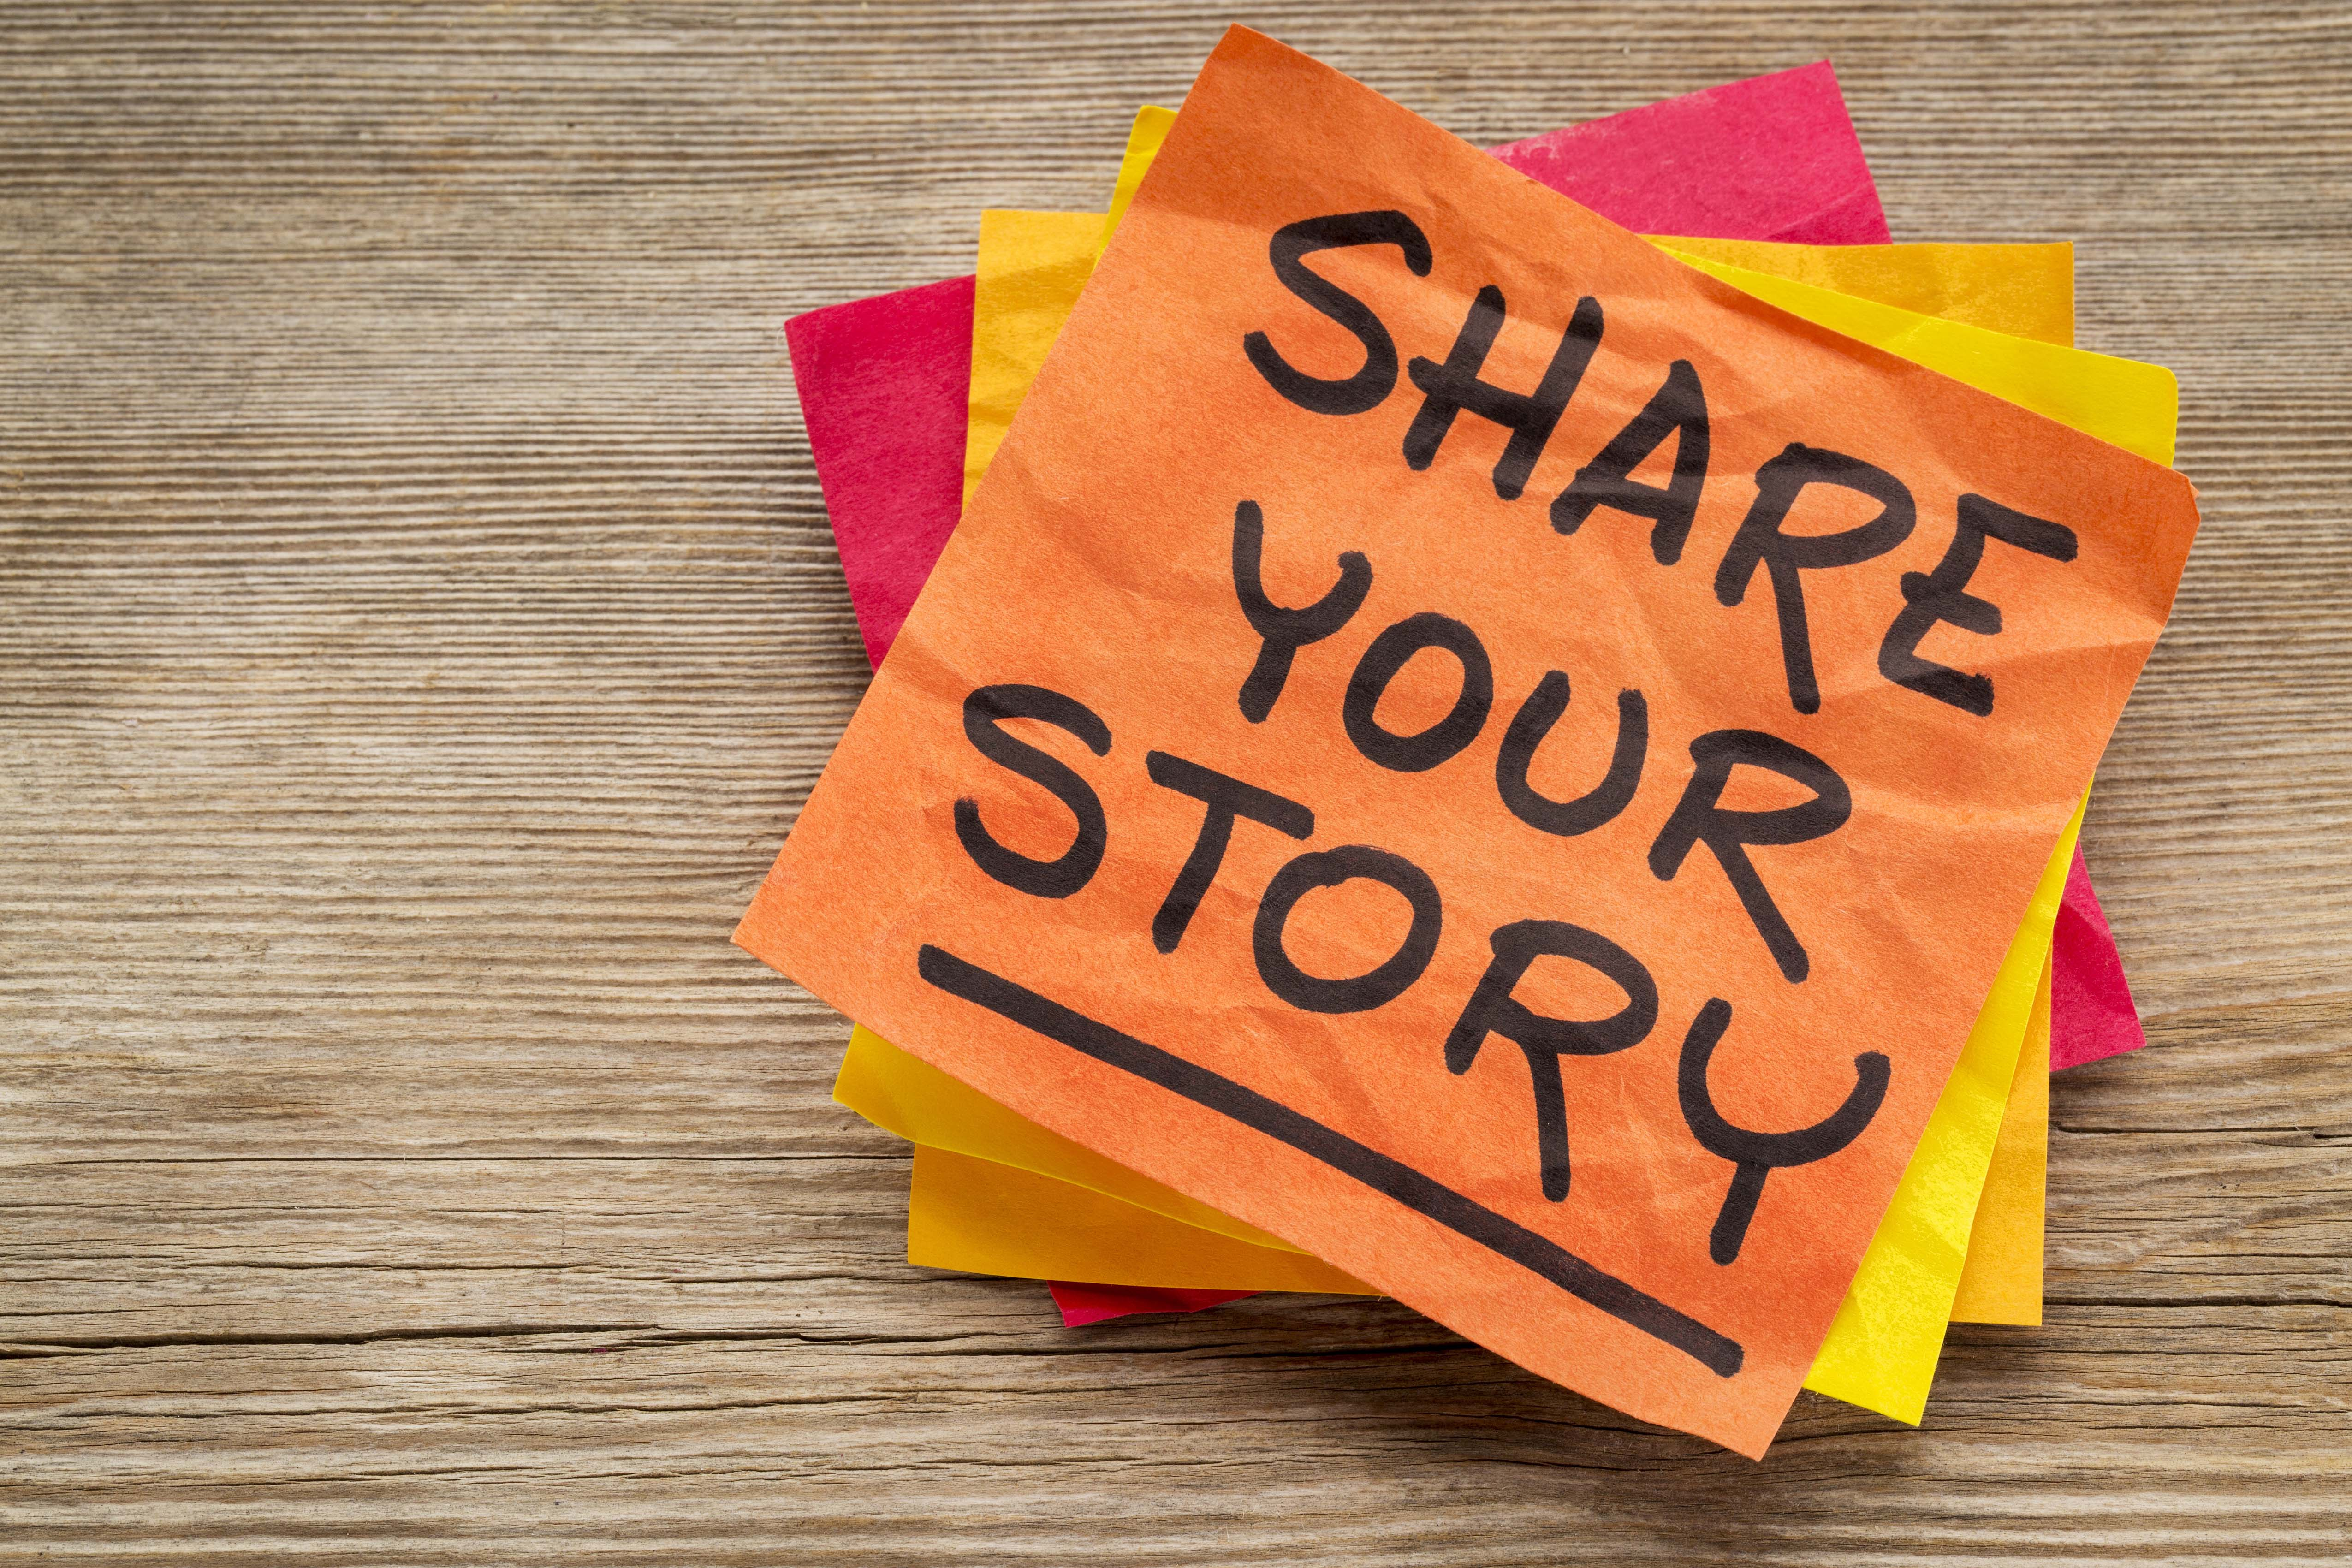 share your story suggestion on a sticky note against grained wood